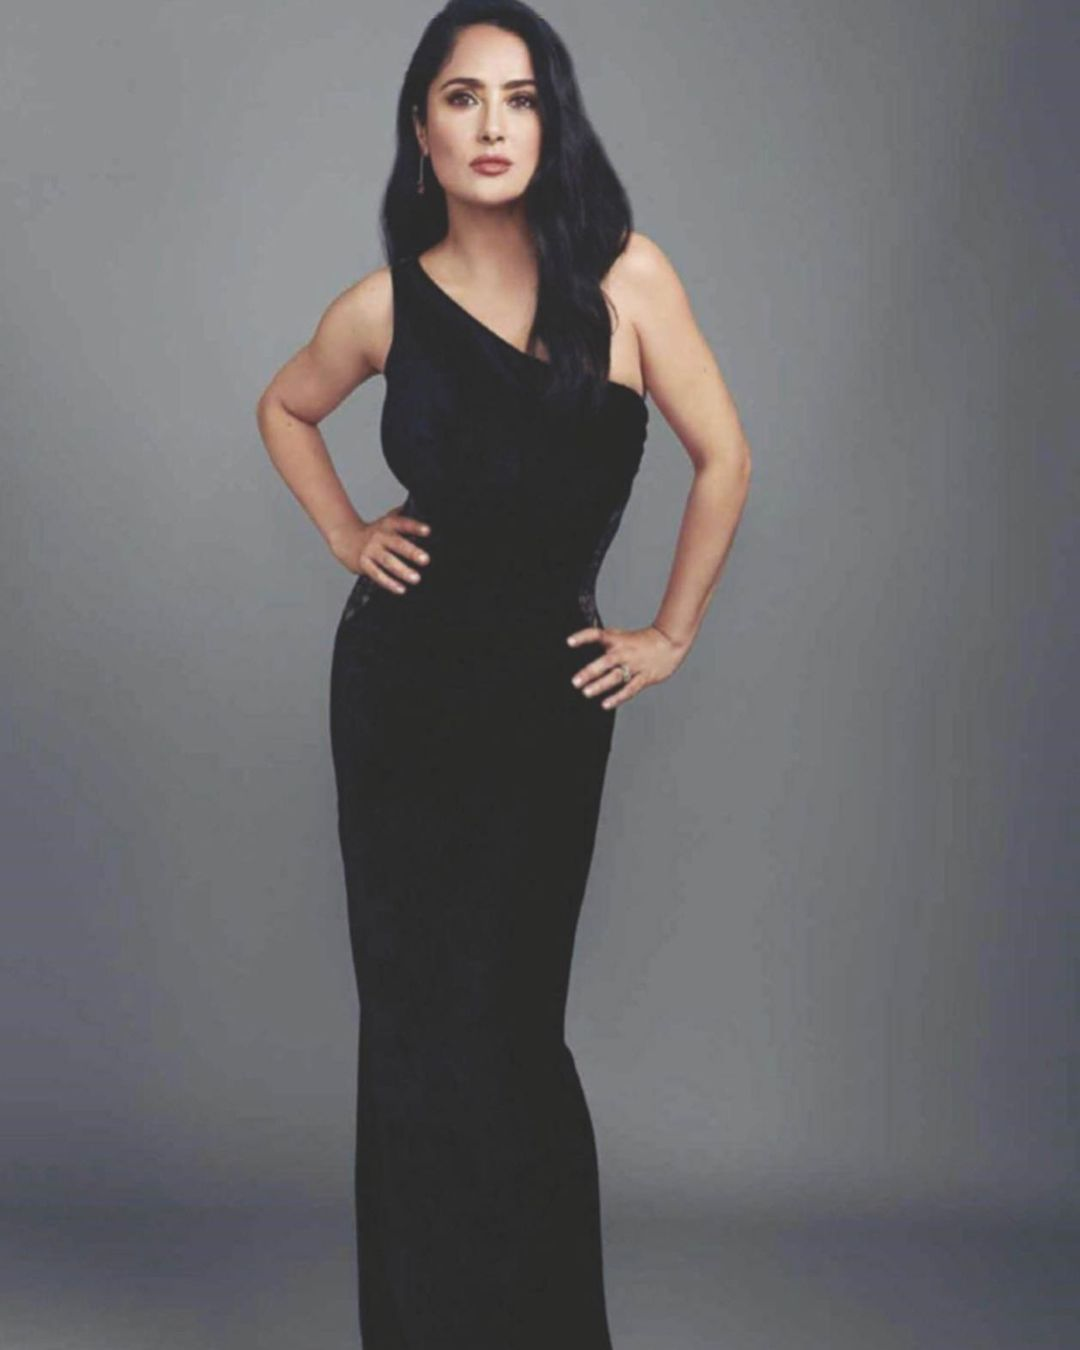 Images of Salma Hayek | Picture 3